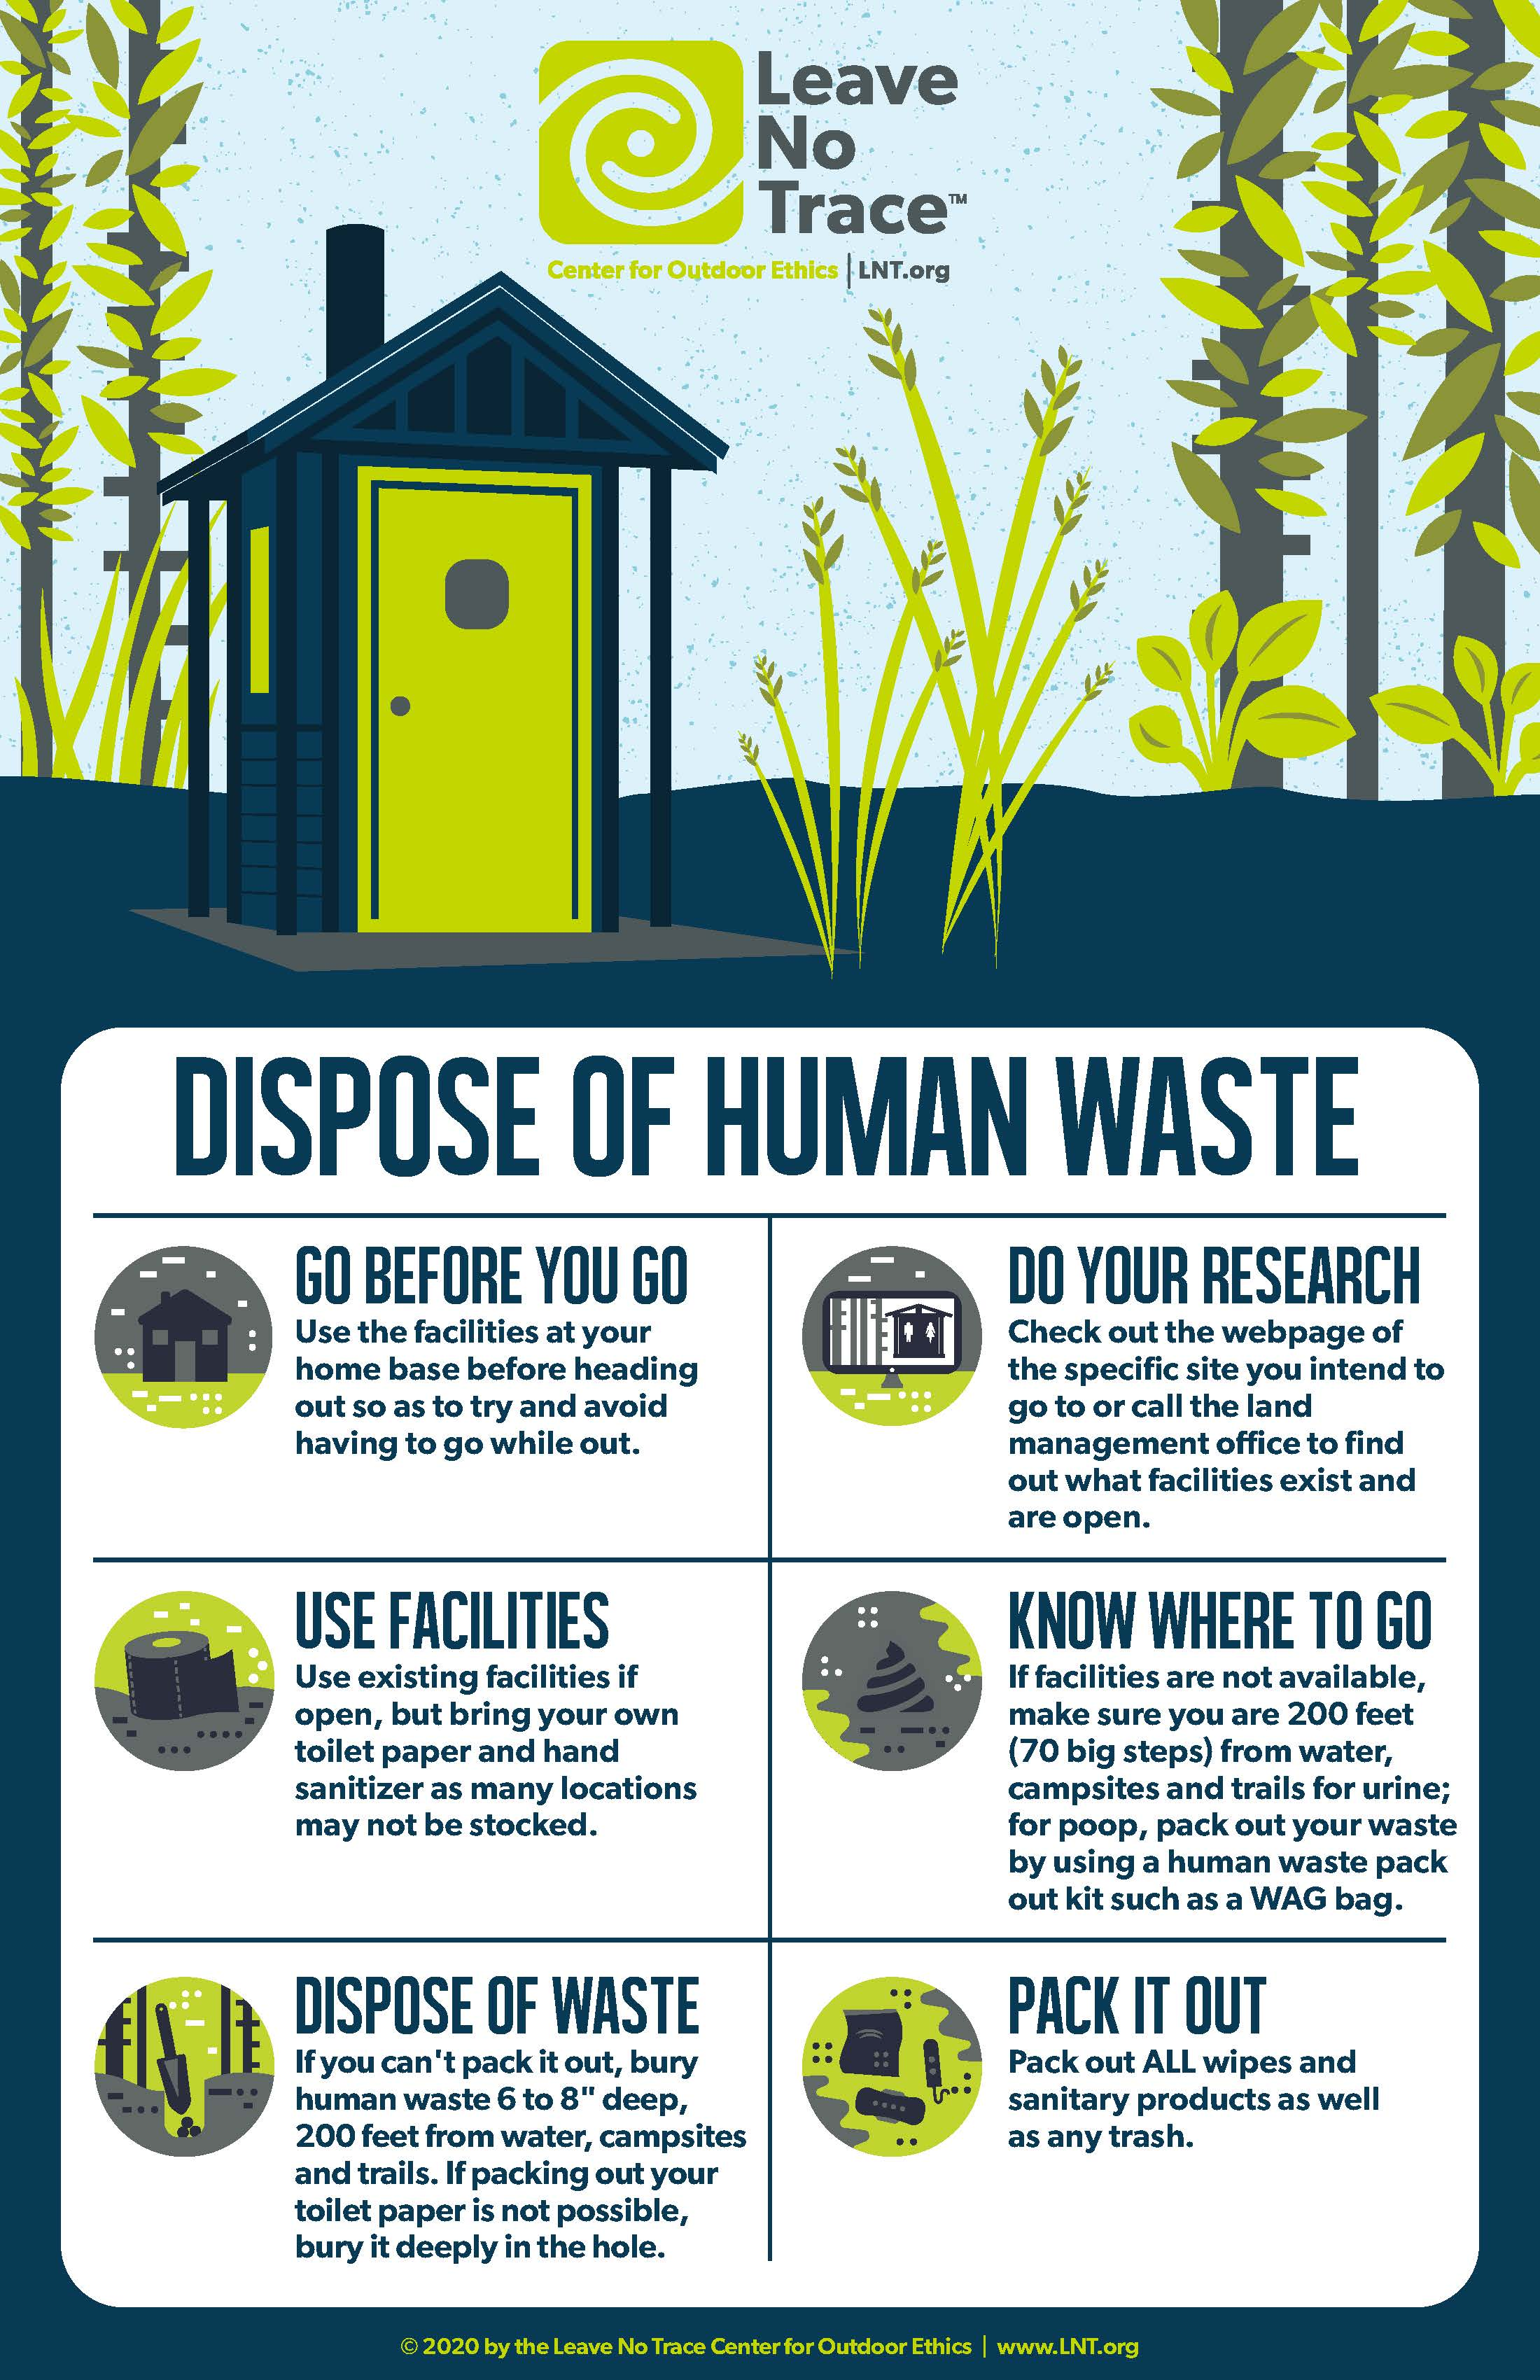 This poster explains the Leave No Trace Guidelines regarding disposing of human waste properly